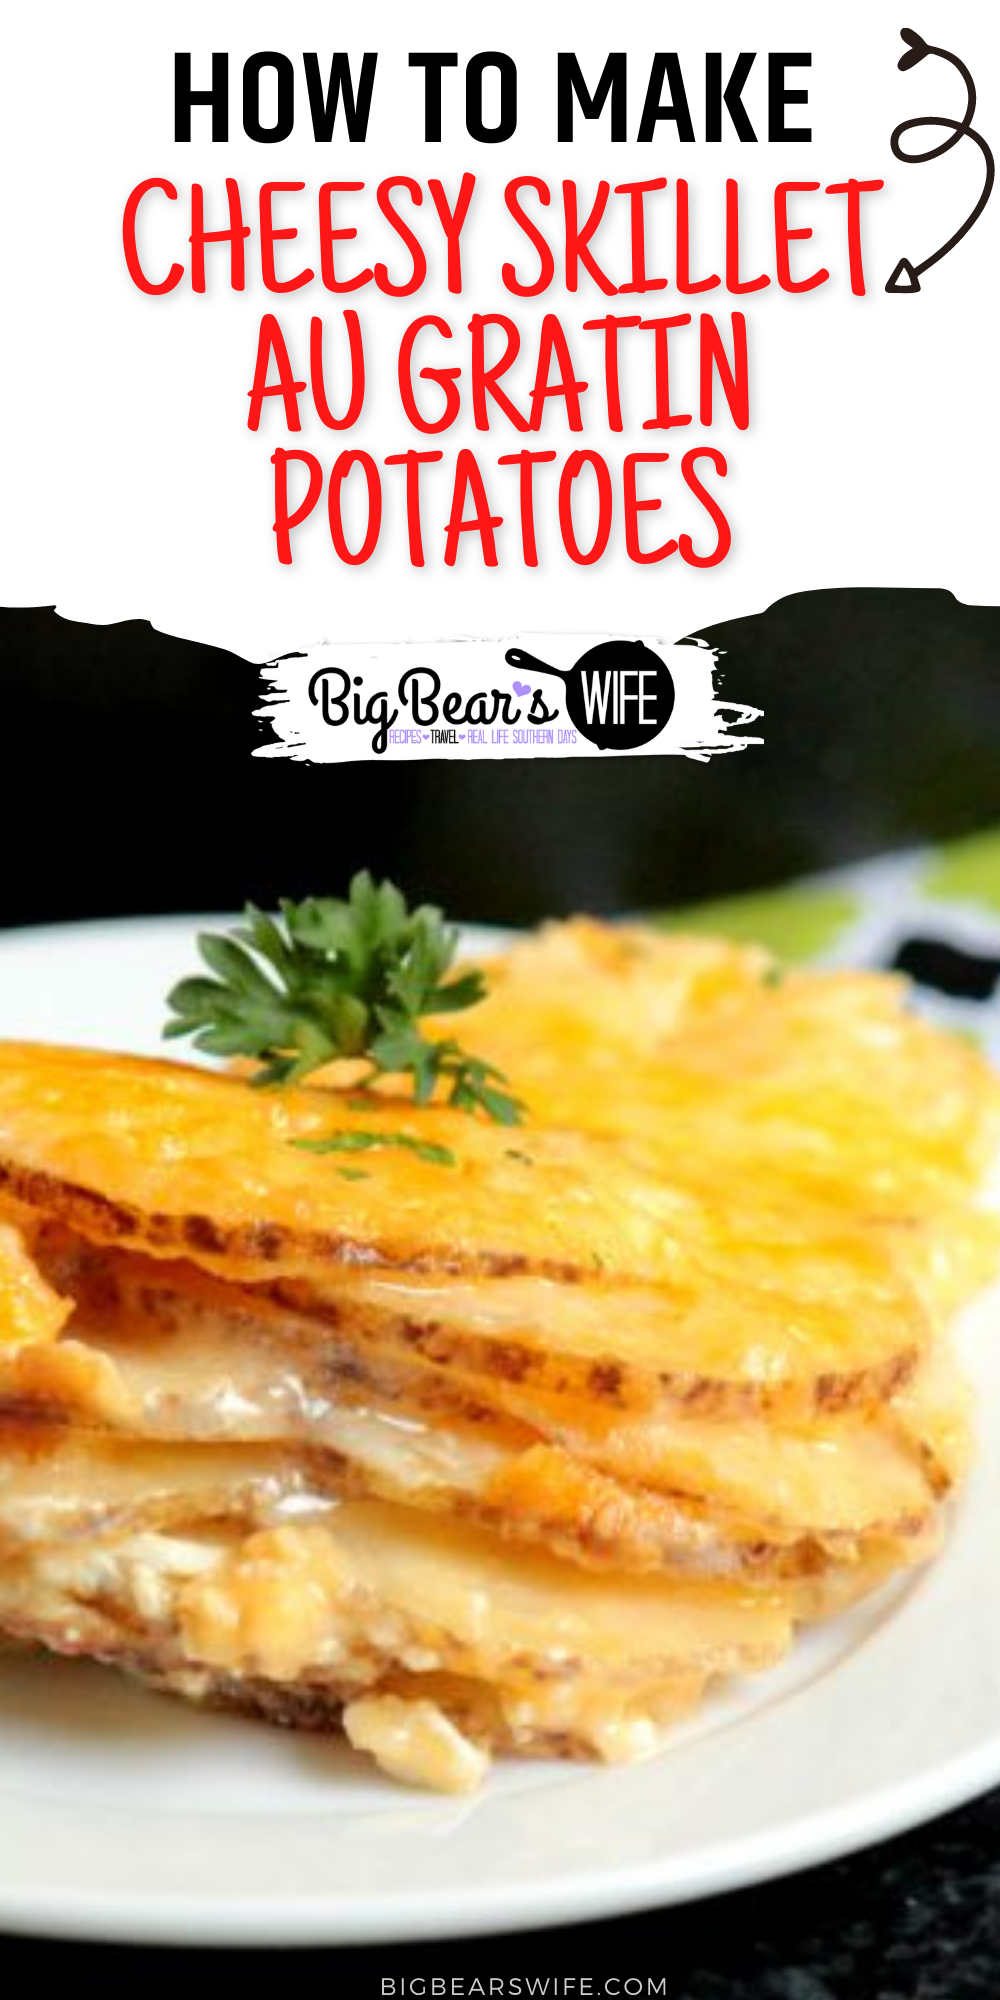 TheCheesy Skillet Au Gratin Potatoes are piled high in a cast iron skillet which means they can be cooked in the oven or in a covered grill via @bigbearswife